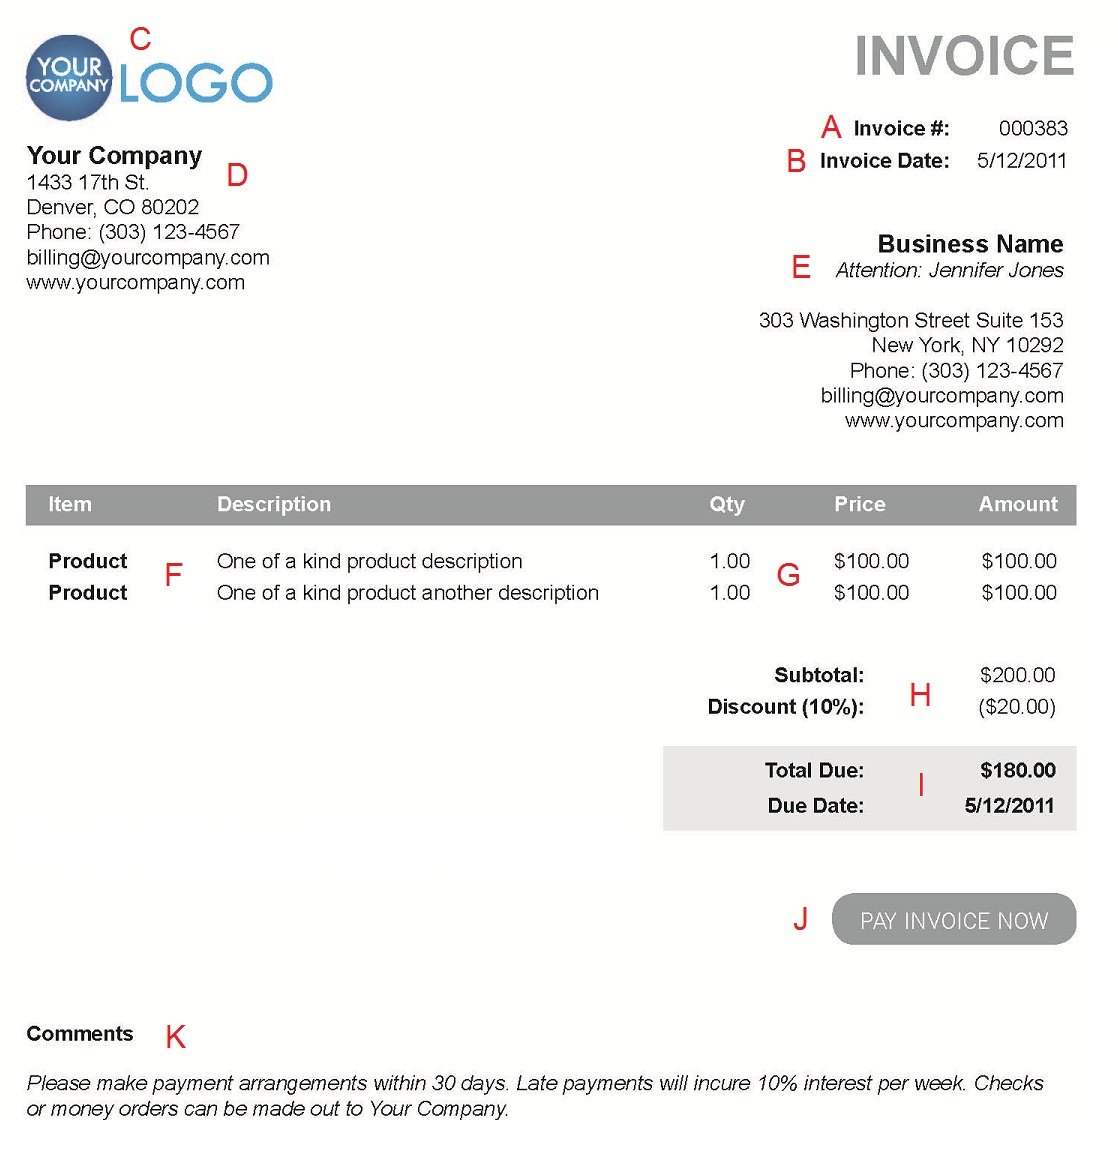 Opposenewapstandardsus  Winsome The  Different Sections Of An Electronic Payment Invoice With Heavenly A  With Easy On The Eye Biscuits Receipts Also Tenancy Deposit Receipt In Addition Printable Receipts For Daycare And Neat Receipts Customer Service As Well As Received Receipt Template Additionally Receipt Copy Sample From Paysimplecom With Opposenewapstandardsus  Heavenly The  Different Sections Of An Electronic Payment Invoice With Easy On The Eye A  And Winsome Biscuits Receipts Also Tenancy Deposit Receipt In Addition Printable Receipts For Daycare From Paysimplecom